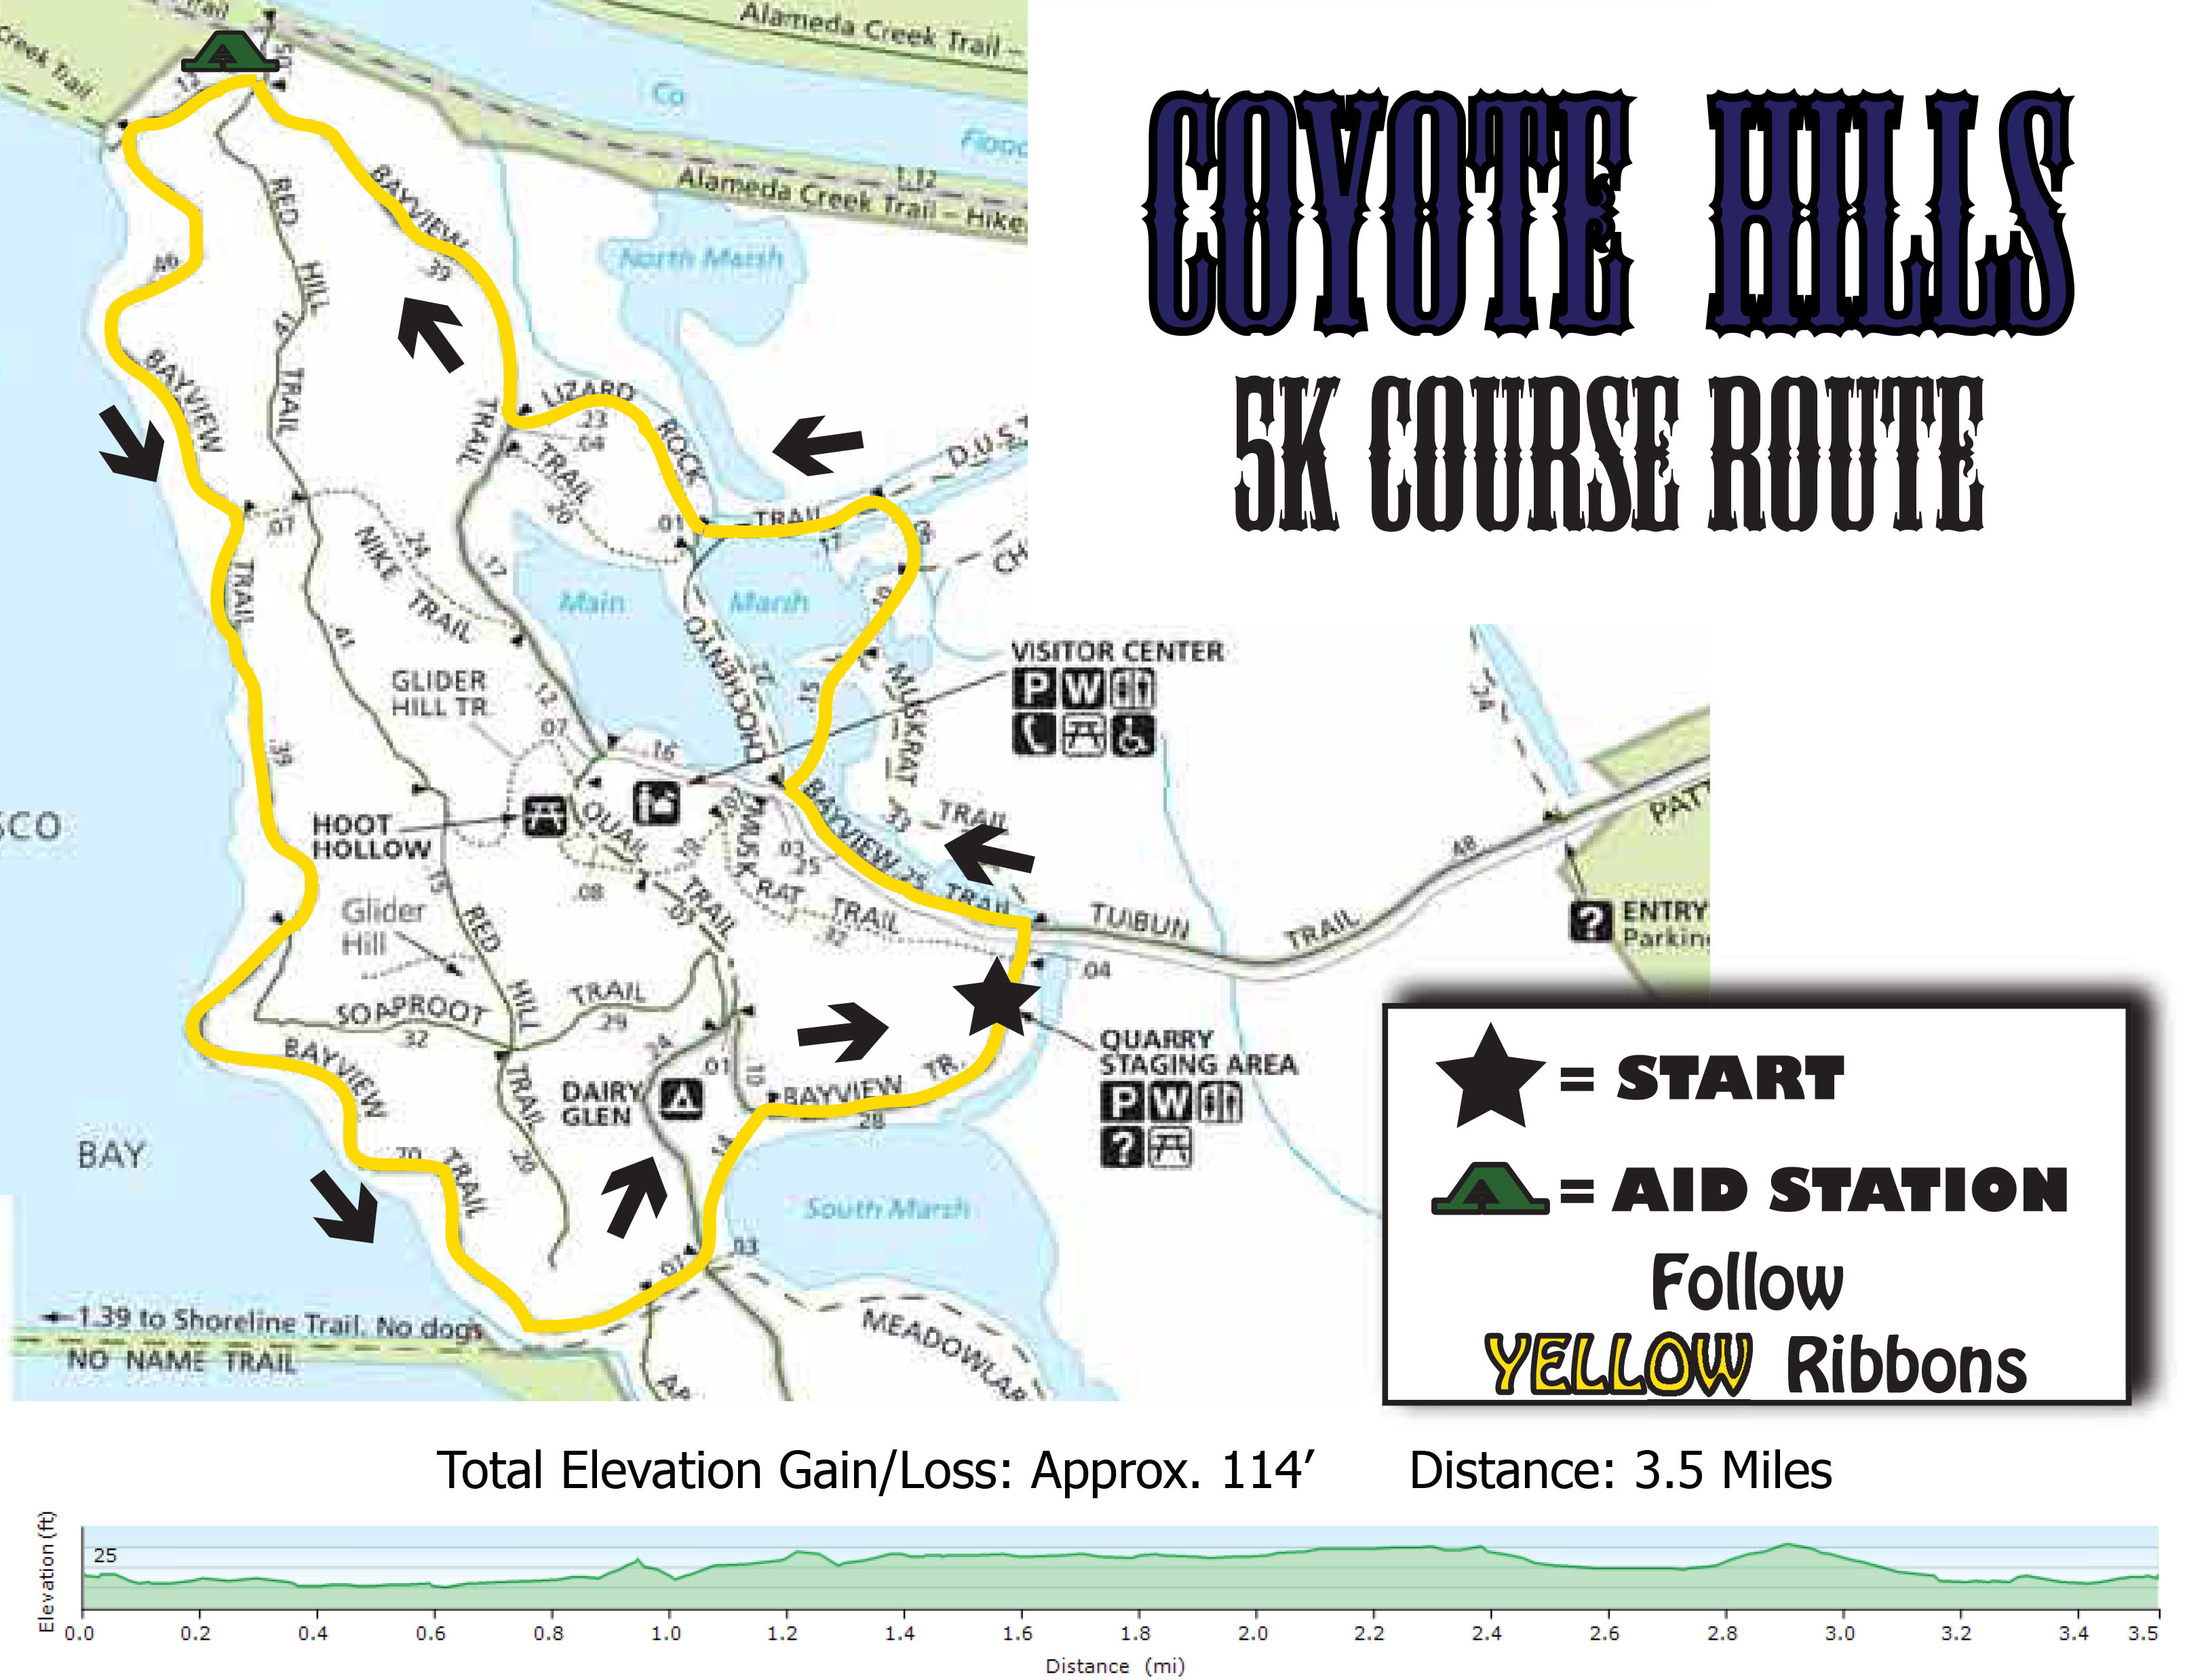 Coyote Hills 5K Map and Elevation Chart